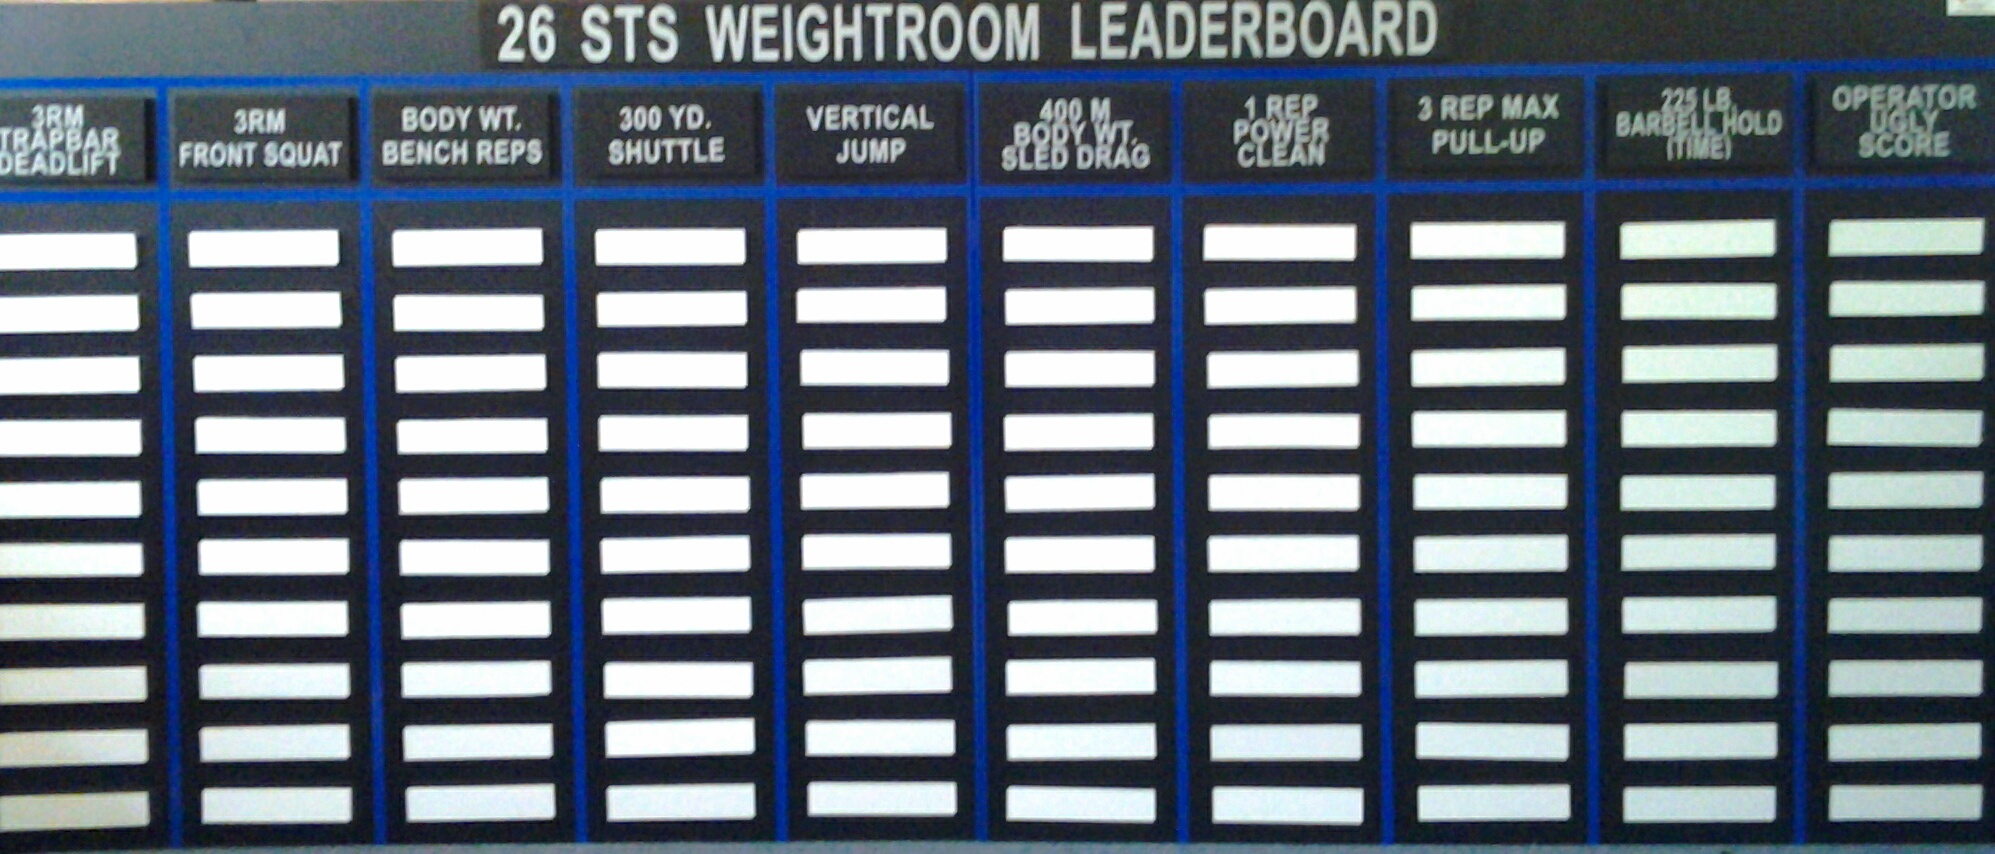 26 STS Weightroom Leaderboard